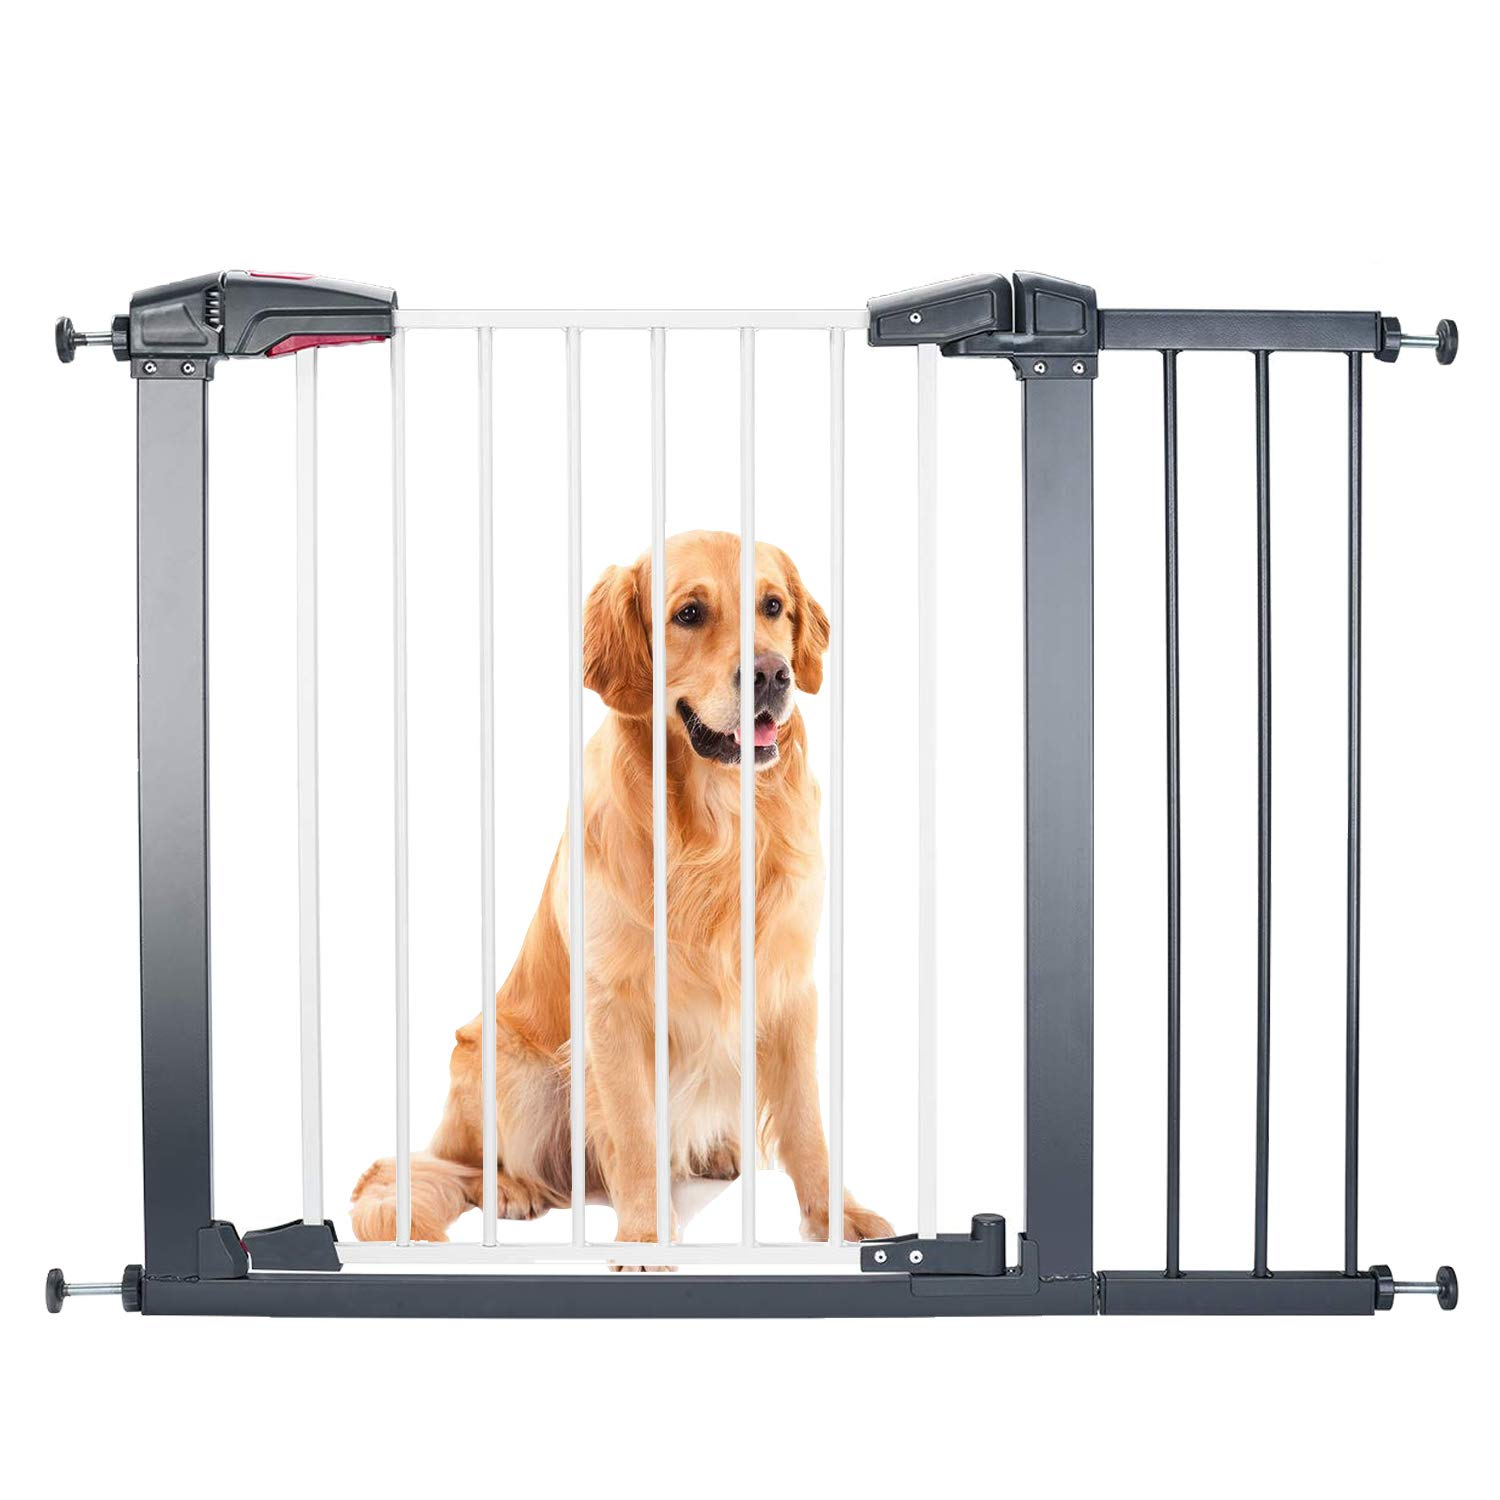 Luuoz Baby Gate Pet Gate Swings Both Ways, 40.6-Inch Baby Gate for doorways, Extra Wide Walk Thru Gate Pressure Mount, Includes 8-Inch Extension Kit, Silver Grey